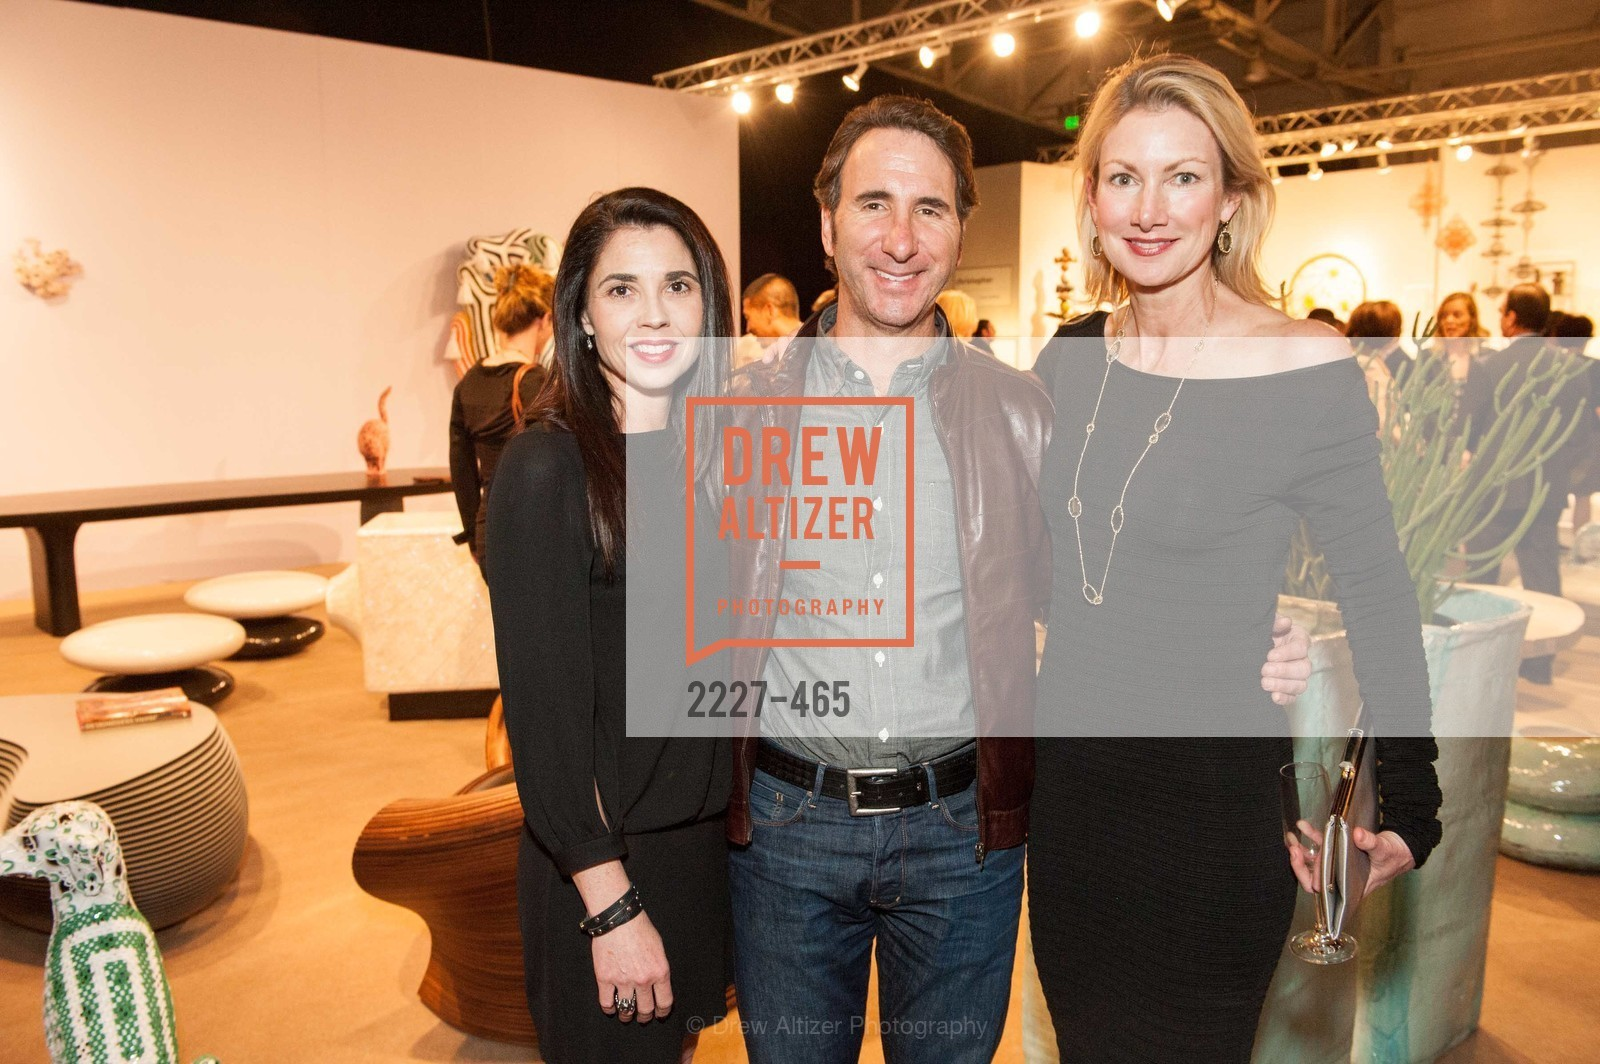 Candace Cavanaugh, Mario Roghiero, Shirley Parks, FOG Design + Art Preview Gala, US. US, January 16th, 2014,Drew Altizer, Drew Altizer Photography, full-service agency, private events, San Francisco photographer, photographer california